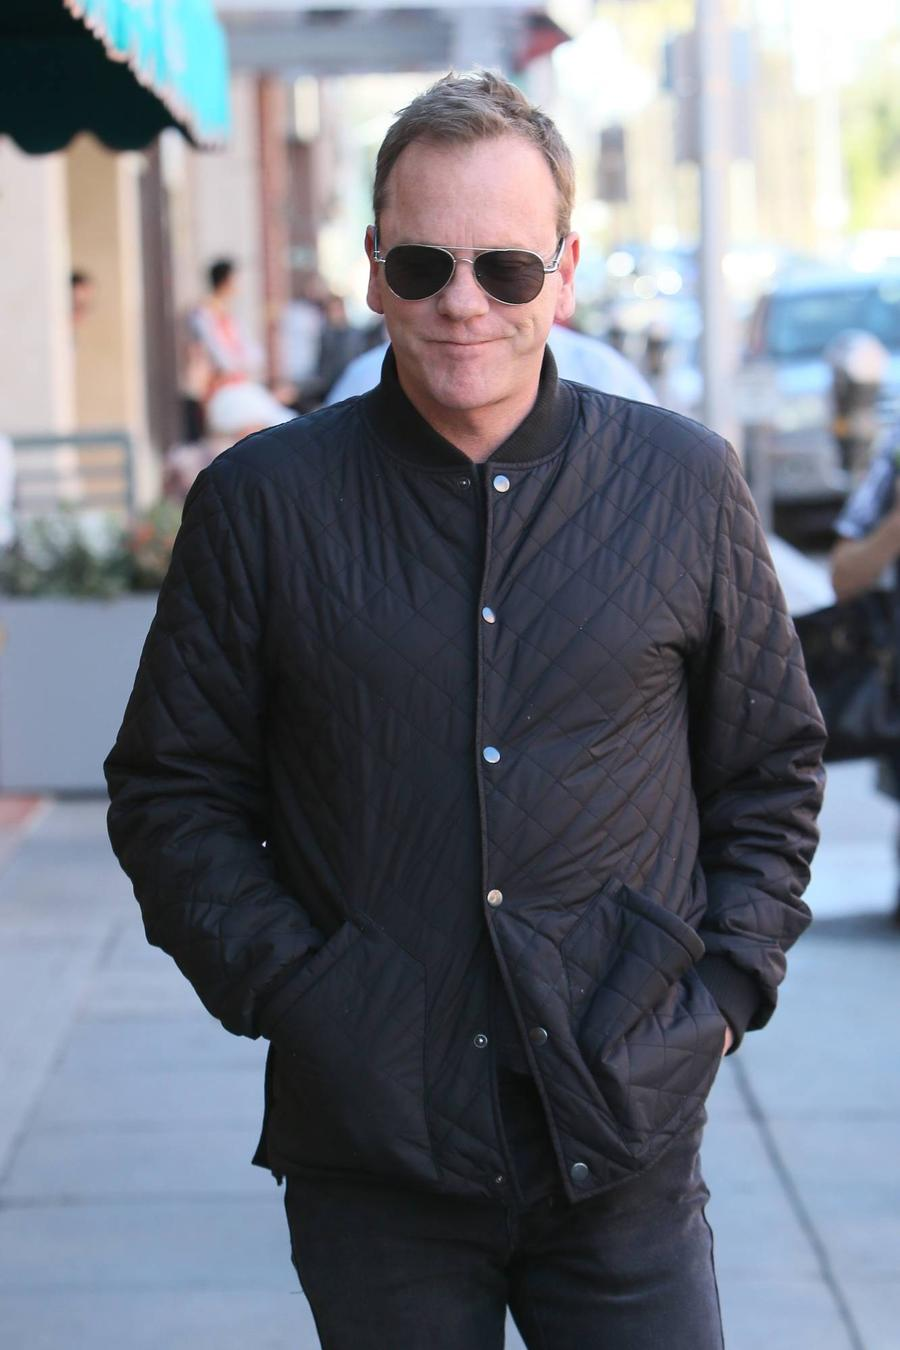 Kiefer Sutherland Interrupted Movie Set To Save Woman From 'Mugging'